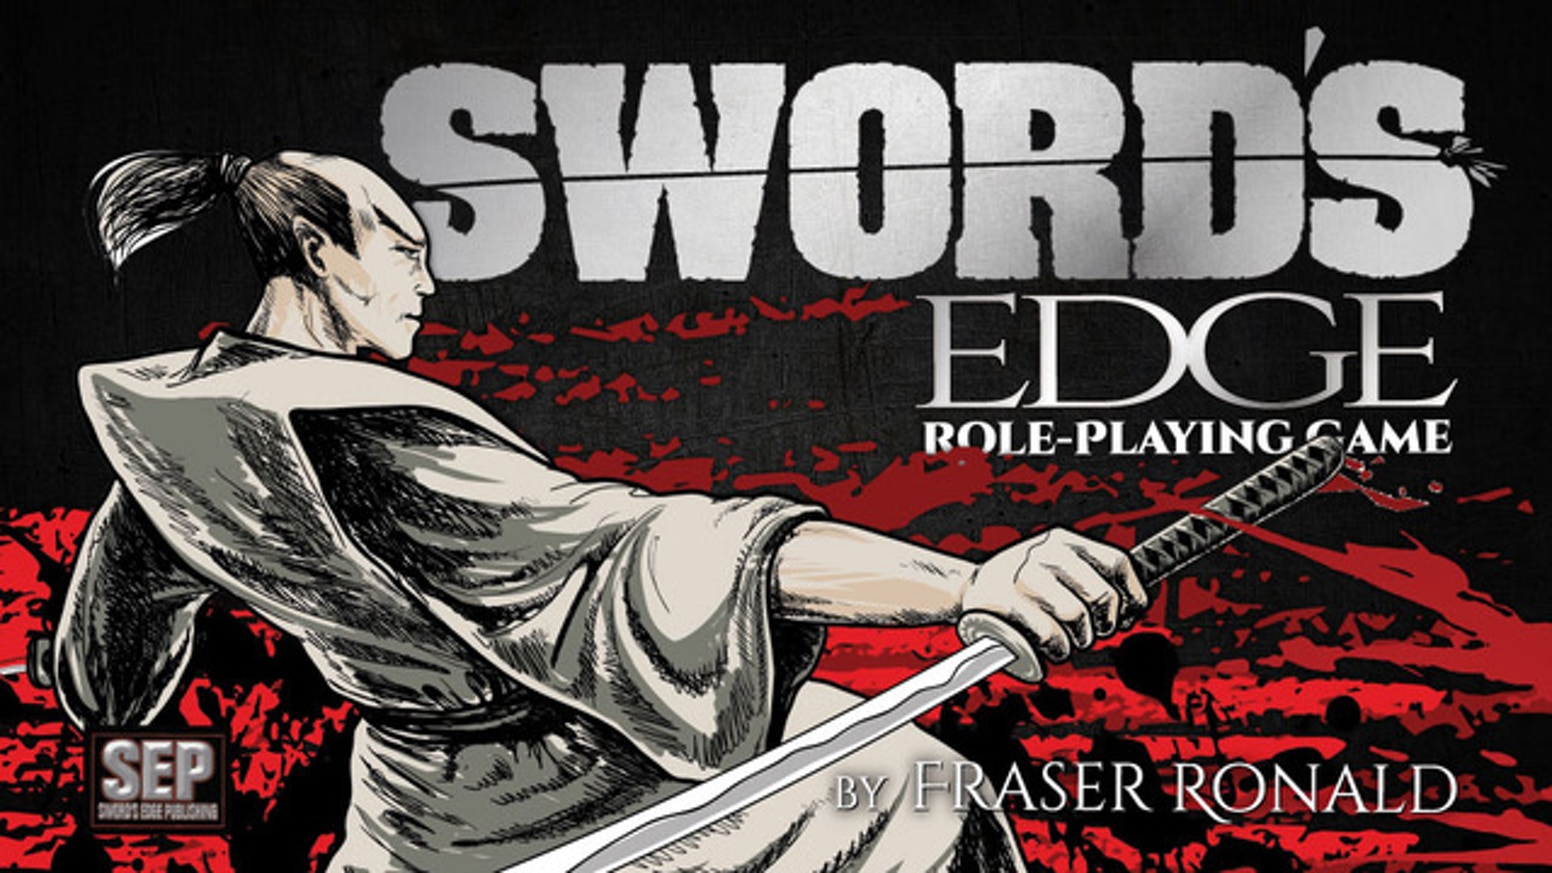 The proven role-playing game system updated and streamlined for faster action while preserving its evocative character creation.